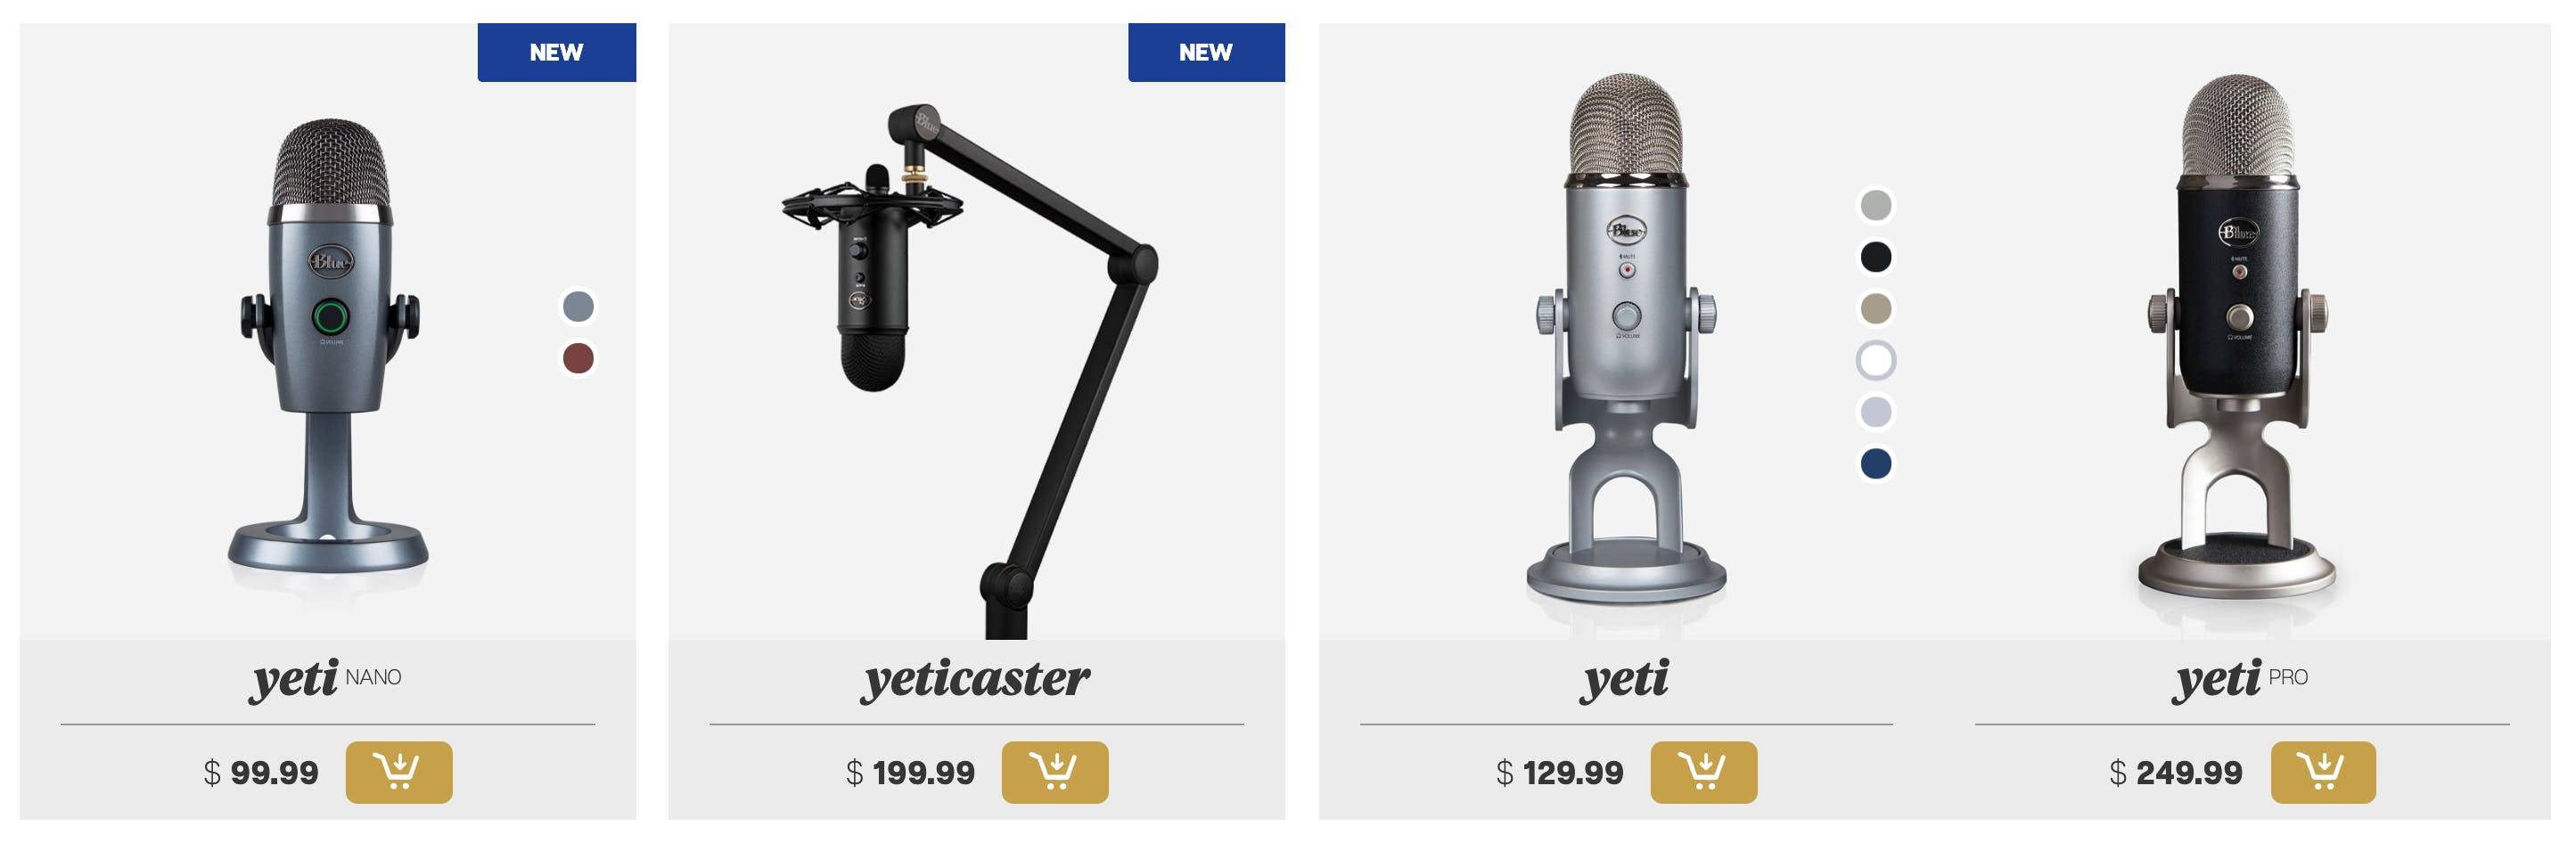 A few of Blue's microphones from their website - all of which have the same design challenge